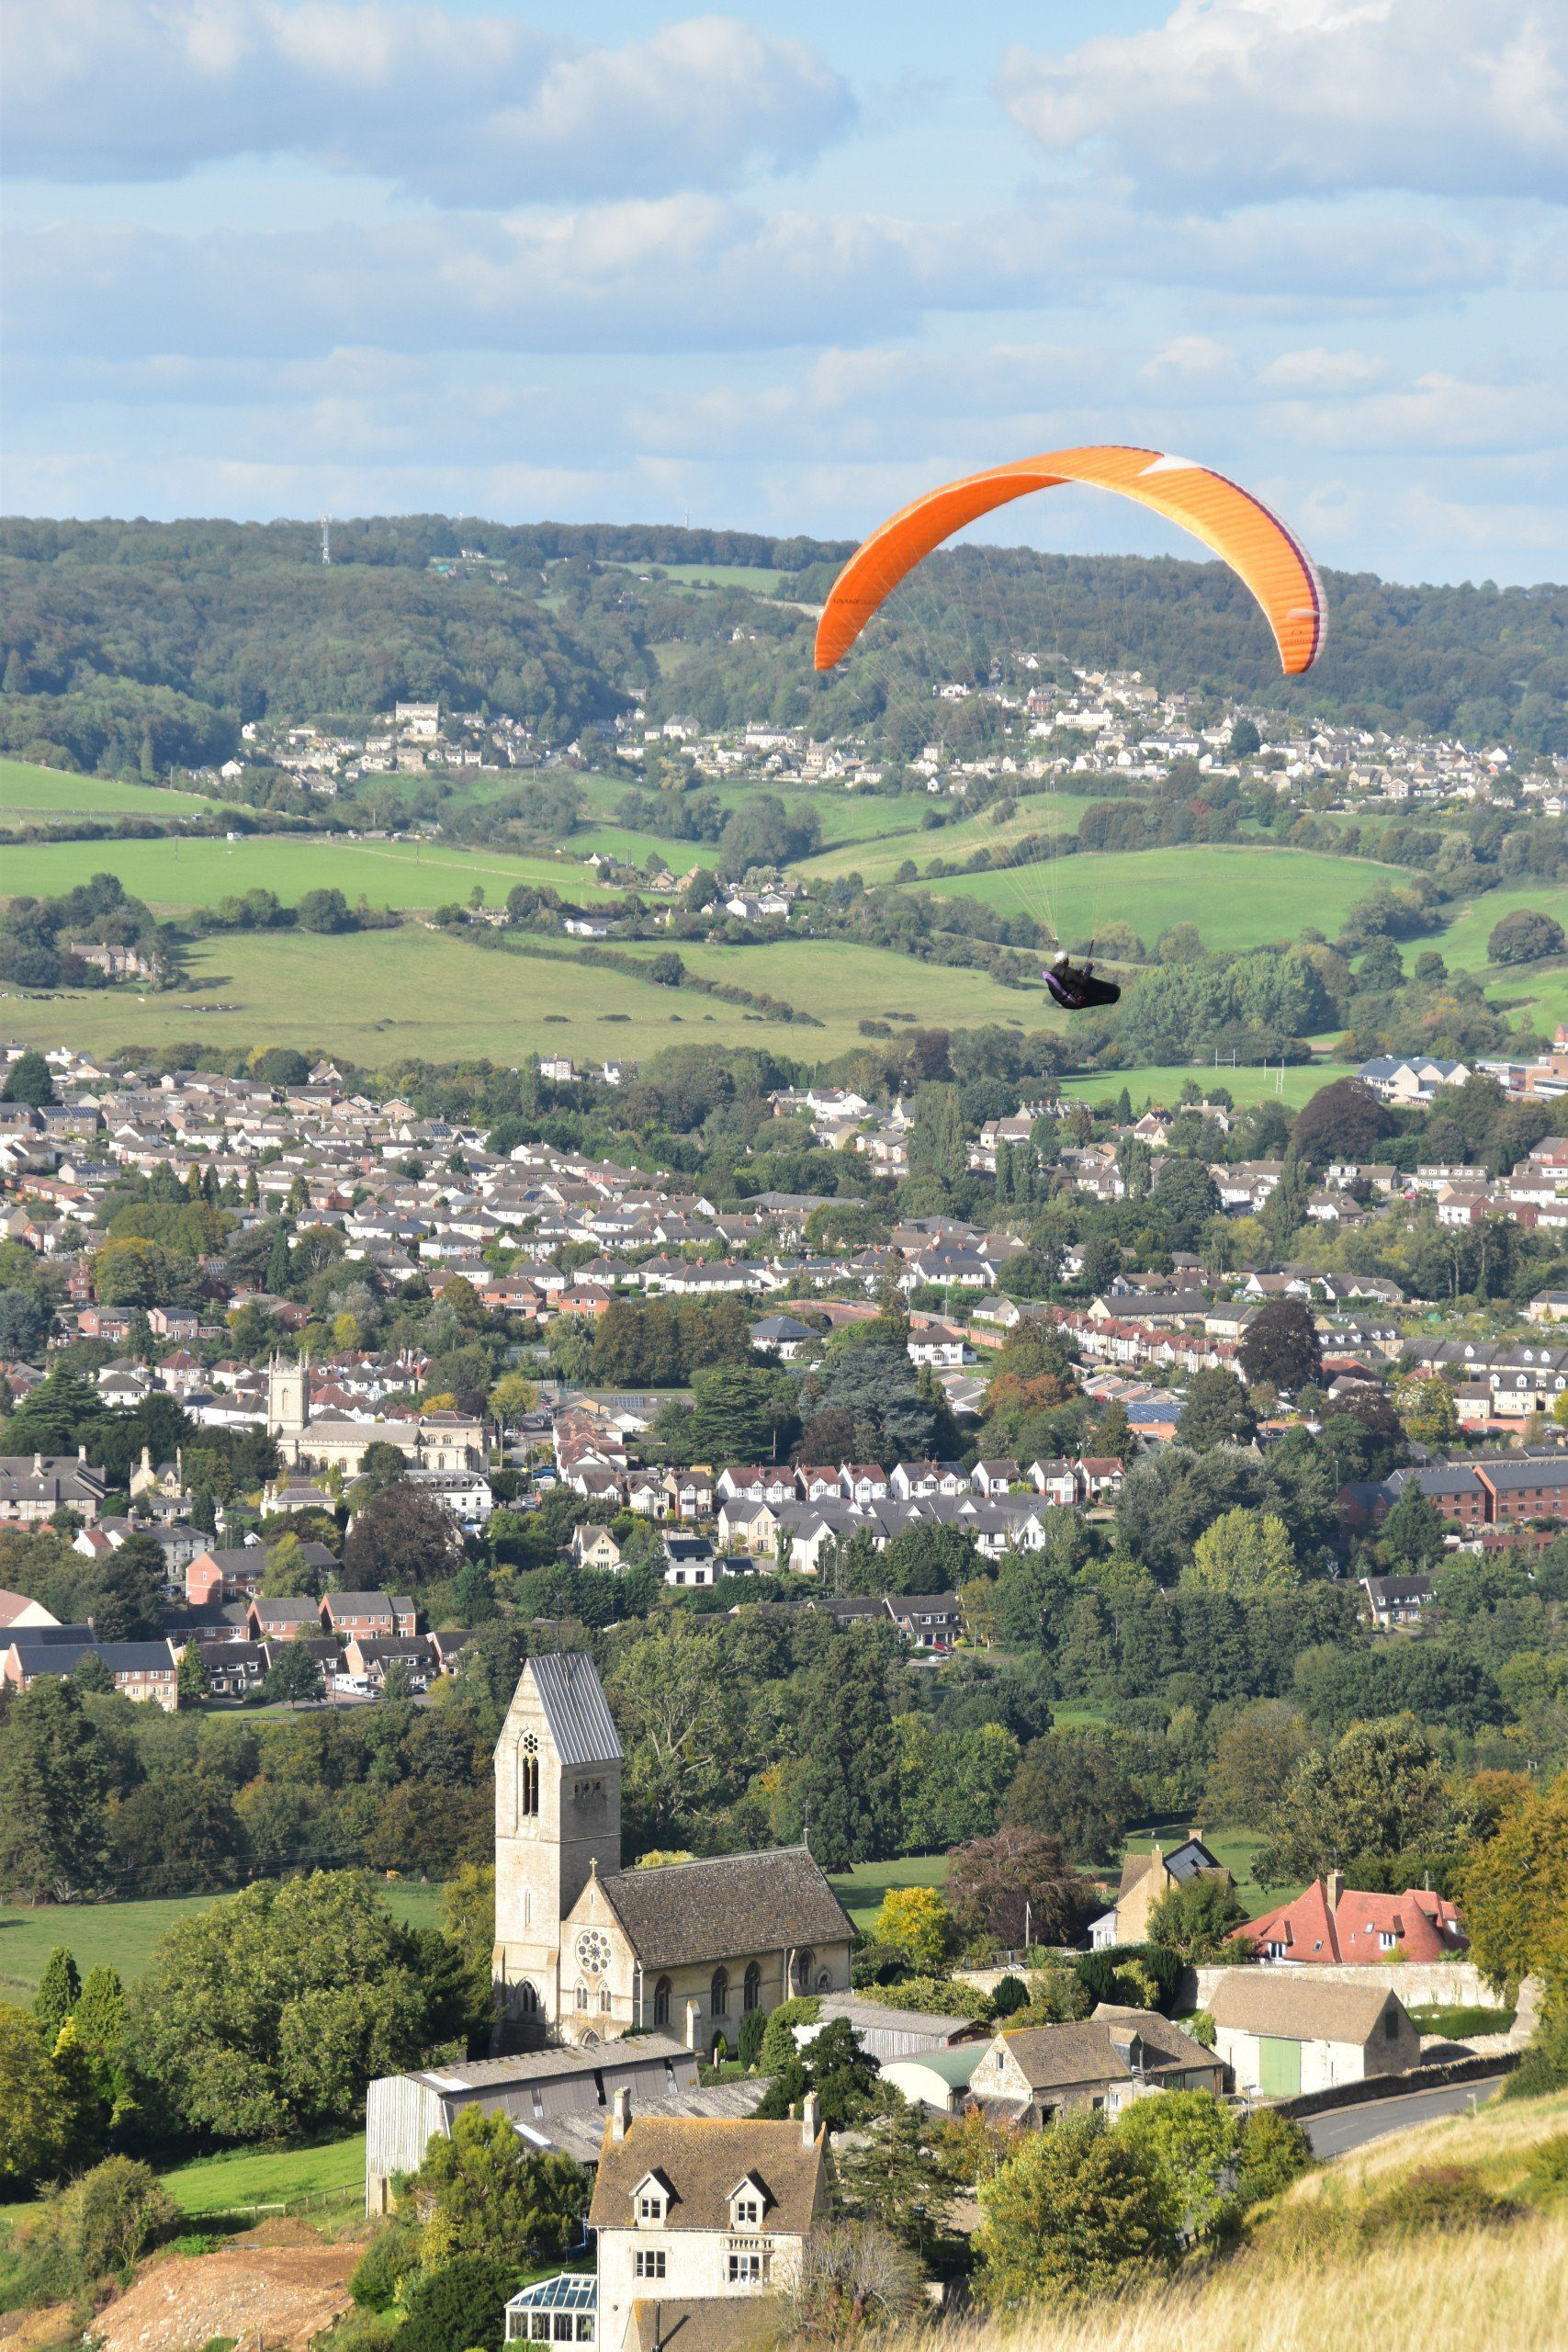 Paraglider flies high above Selsey